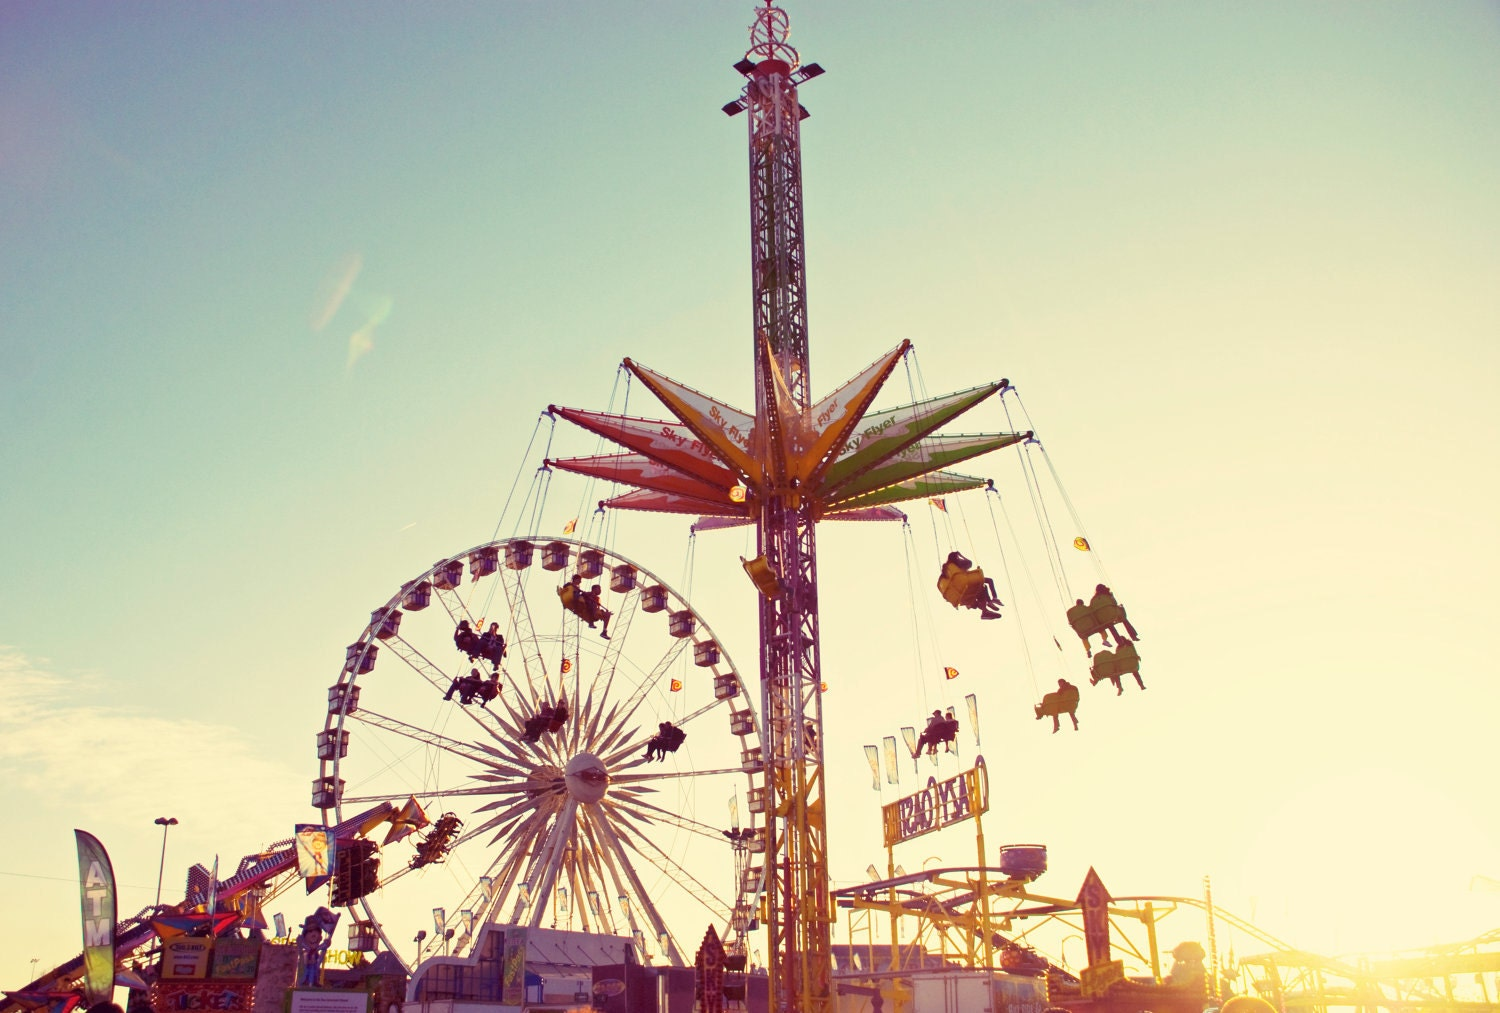 Fine art photography retro fair carnival vintage ride for Vintage style photography tumblr